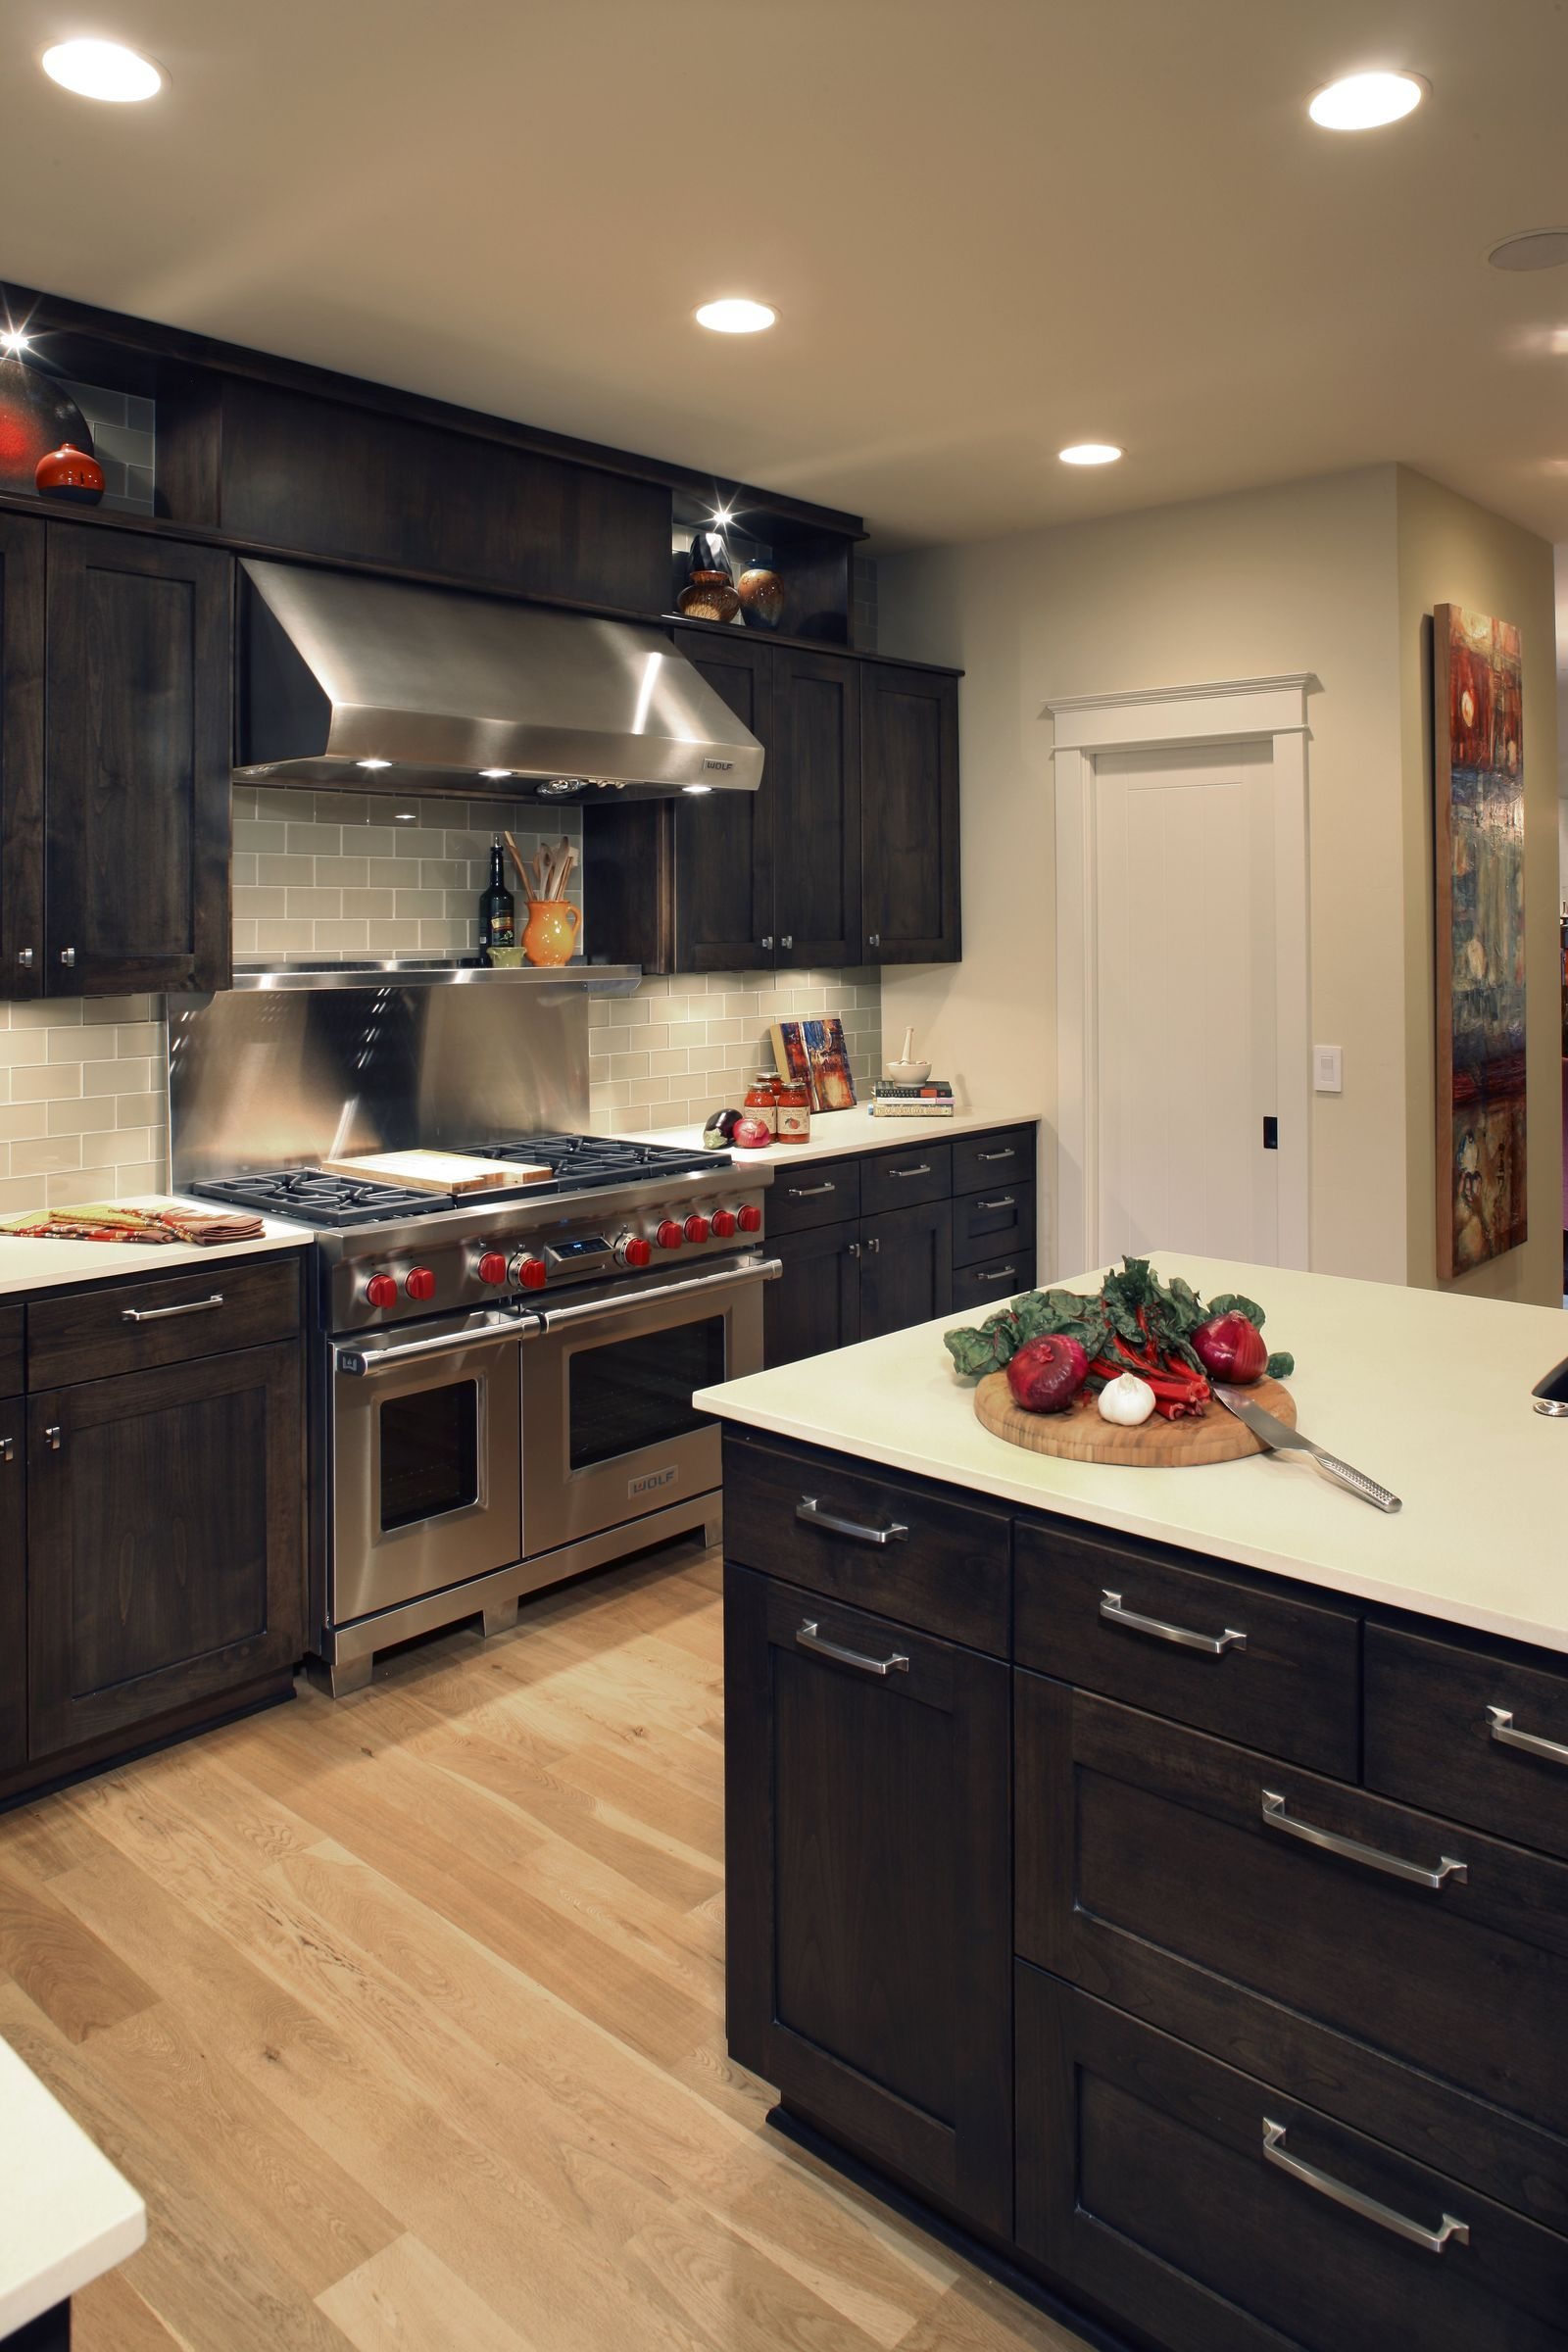 It S Official These Are The Best Kitchens With Subway Tiles In 2020 Kitchen Renovation Design Kitchen Remodel Small Kitchen Remodel